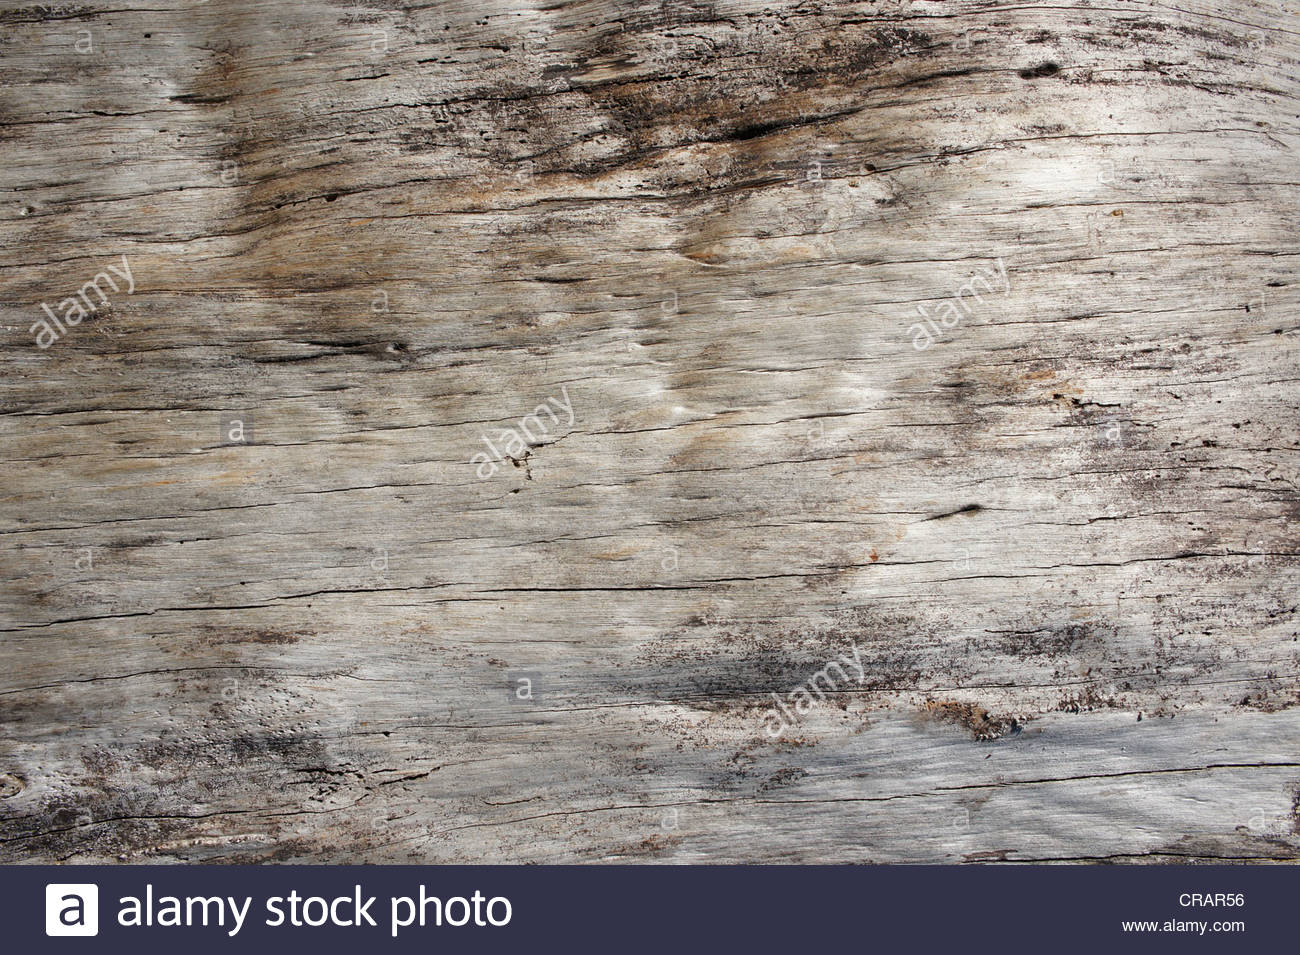 The wooden base - Stock Image